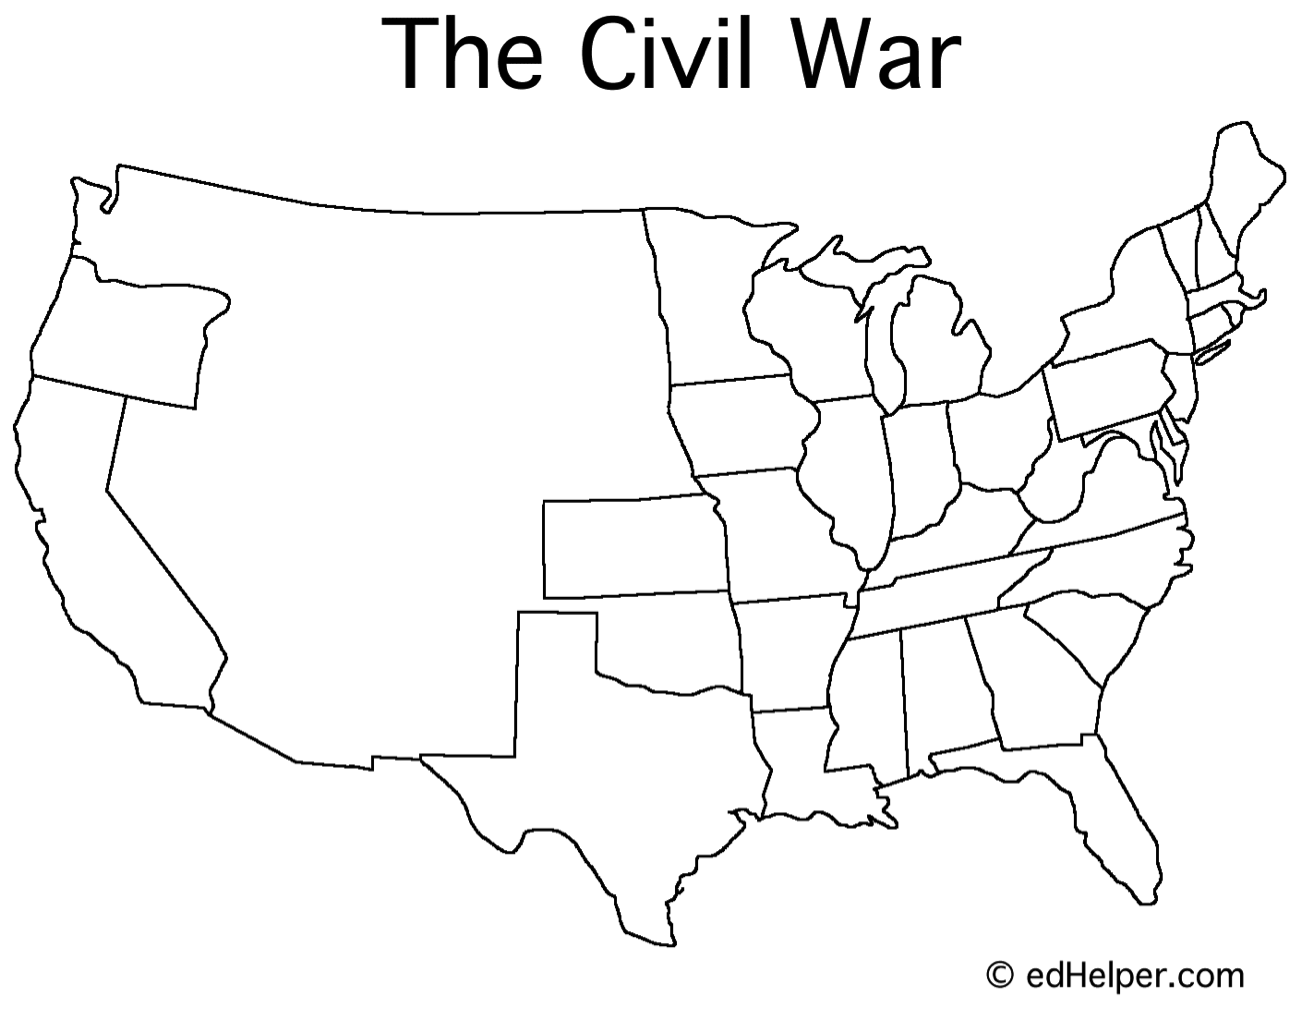 hight resolution of Pin on Civil War curriculum